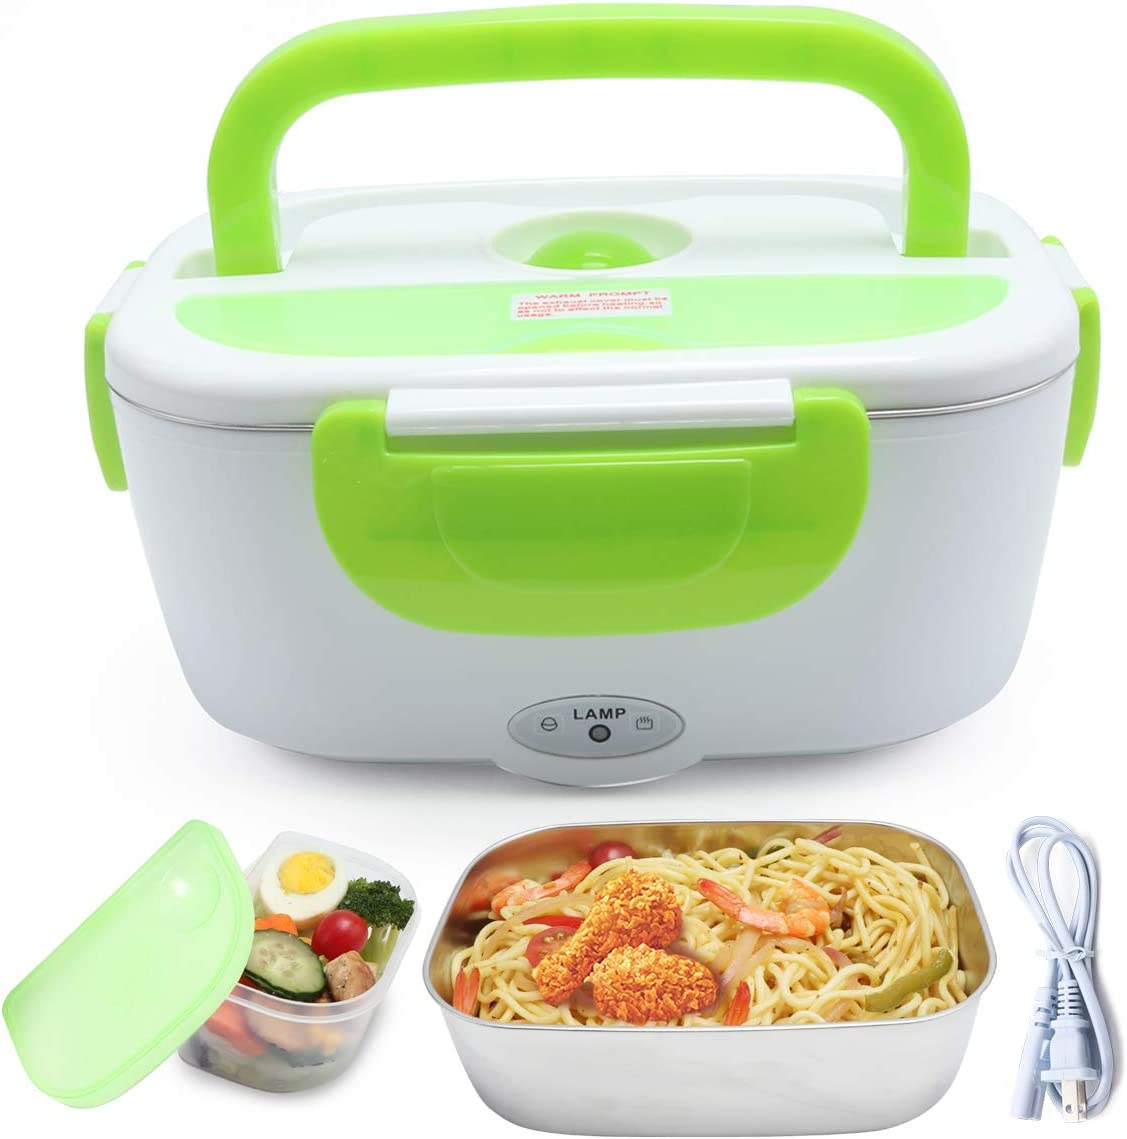 XDeal Electric Warming Lunch Box Food Heater 1.5L 110V Home-Use Plug In Lunch Warmer Portable Bento Box Lunch Heater With Removable 304 Stainless Steel Container Food Grade Material(Green)